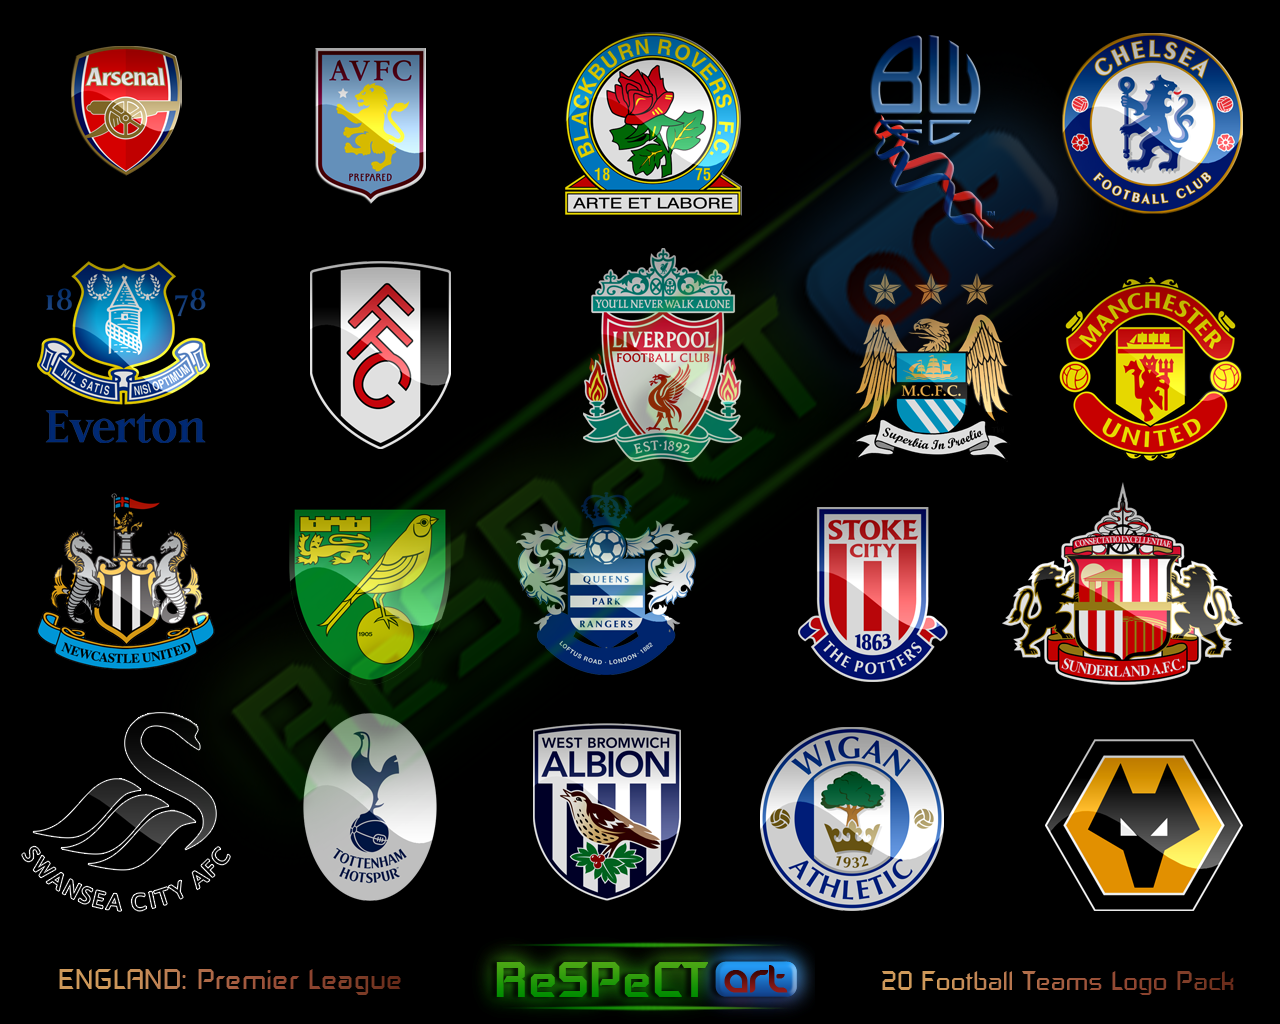 england__premier_league_football_teams_logo_pack_by_respects-d5e7m2y.png